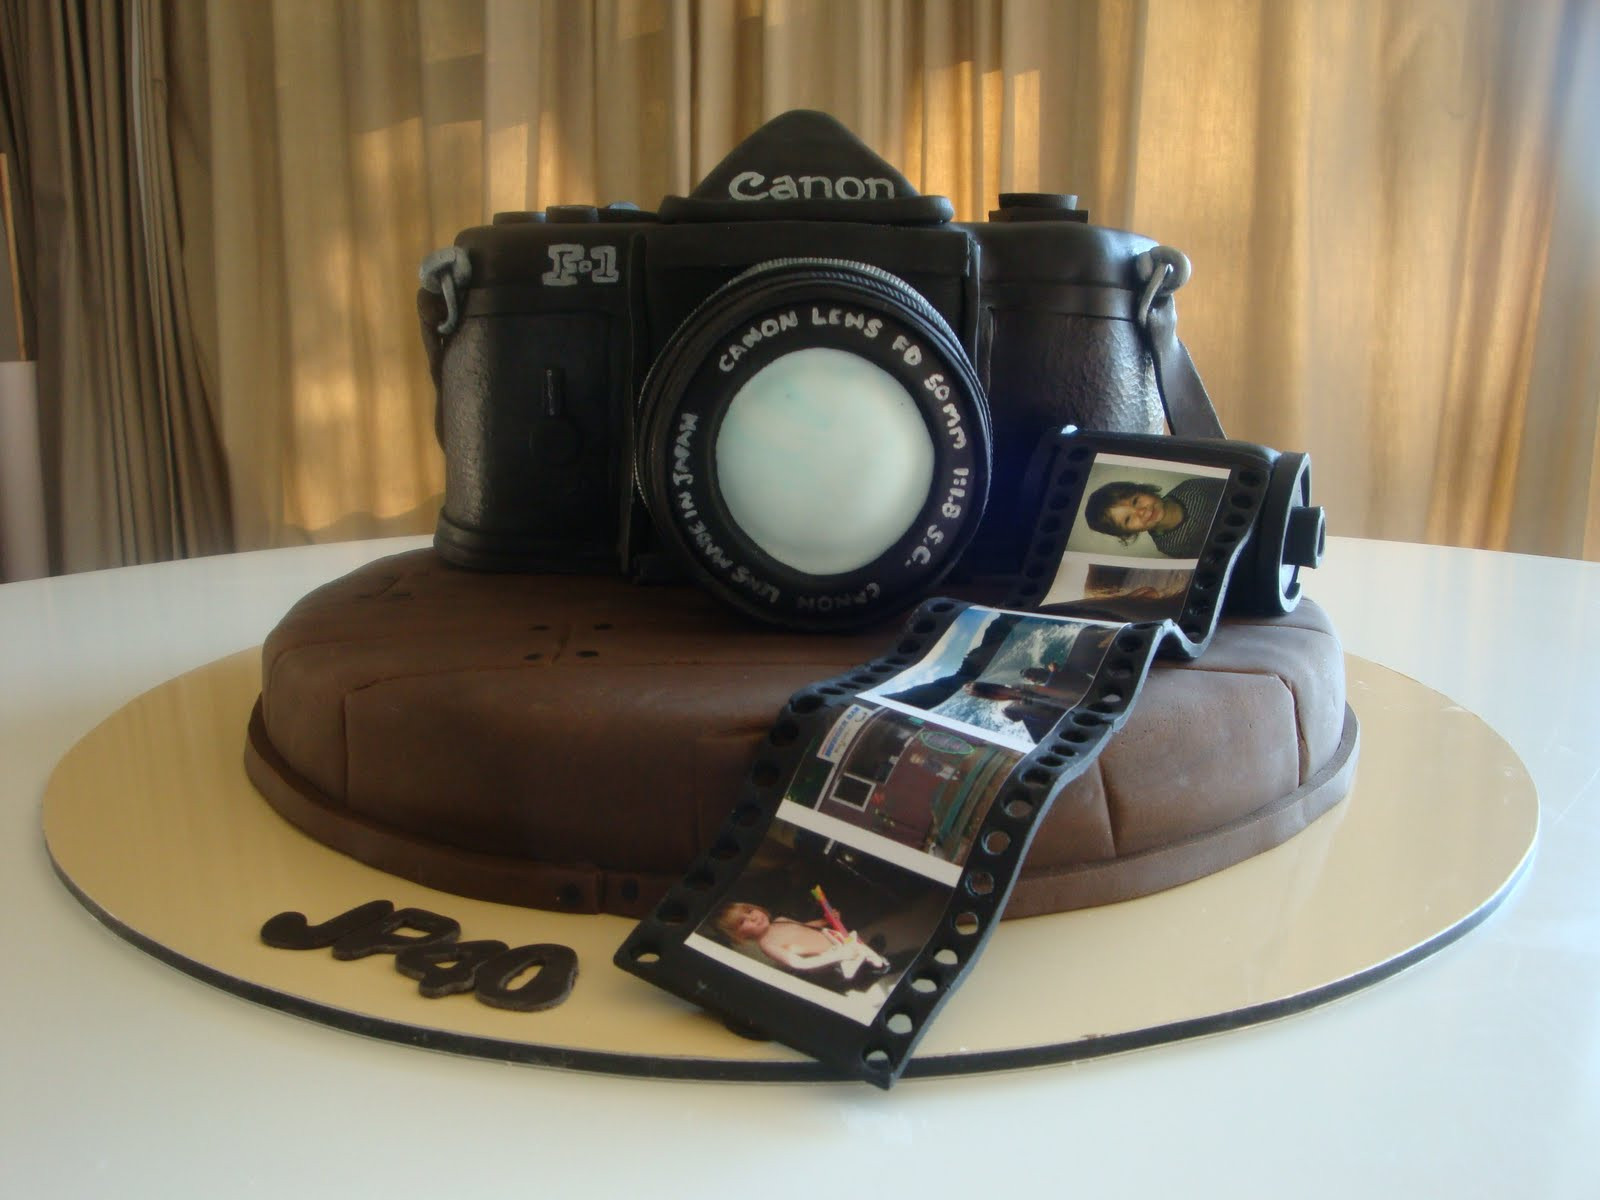 Best ideas about Camera Birthday Cake . Save or Pin Mrs Woolley s Cakes Camera Cake Now.